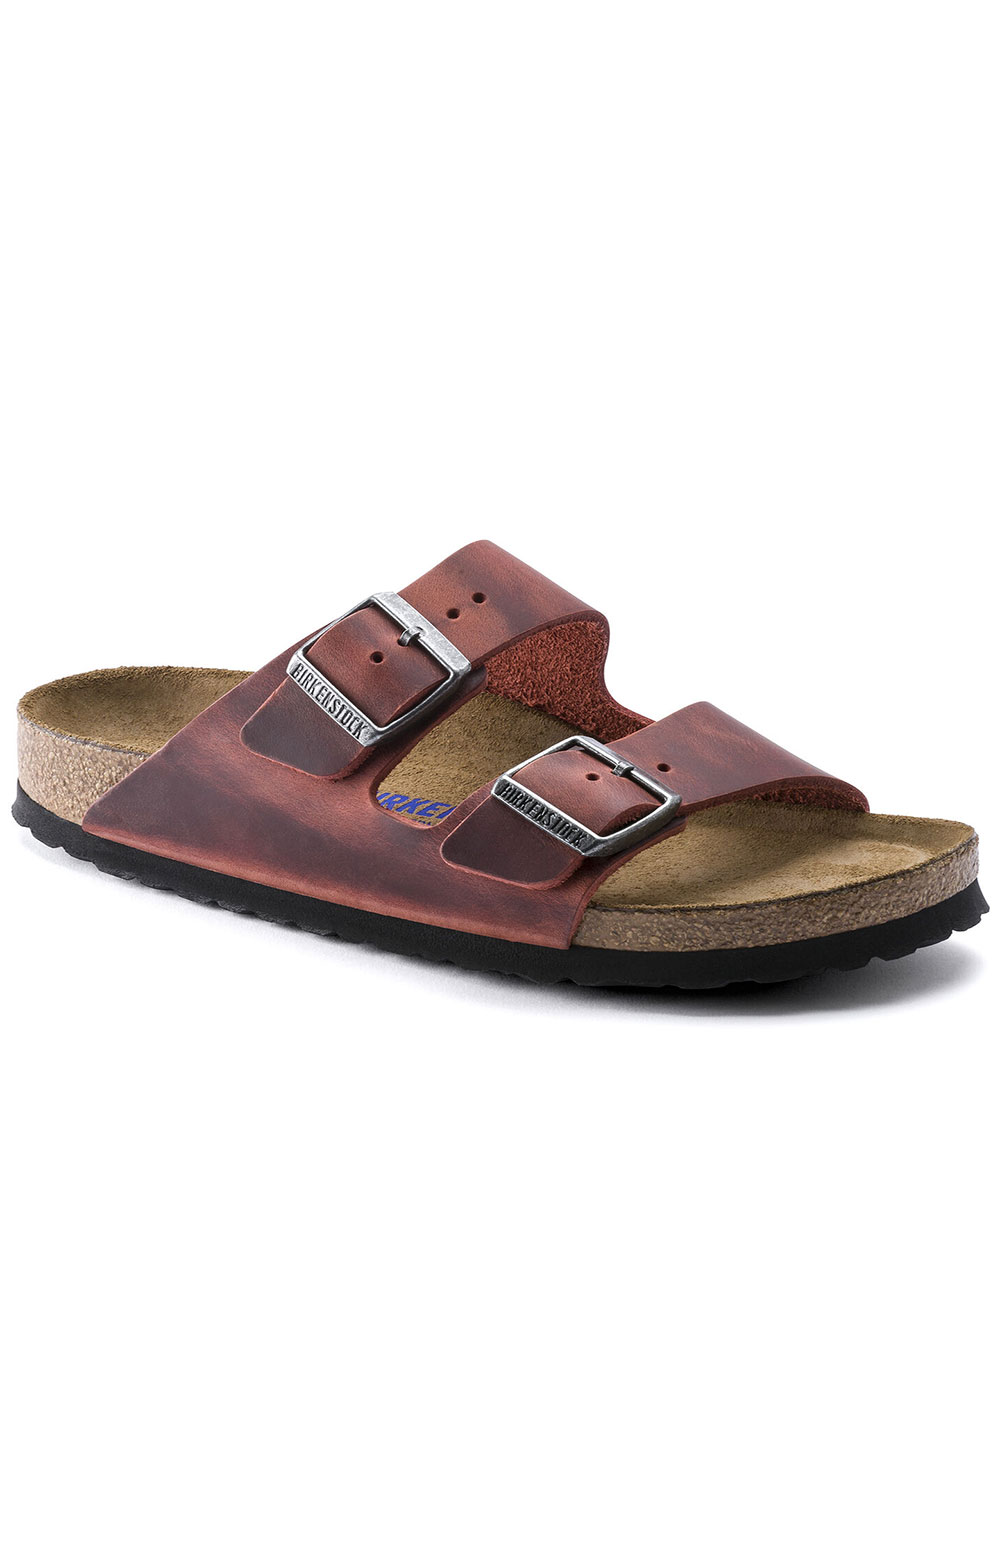 (1015545) Arizona Soft Footbed Sandals - Earth Red 2